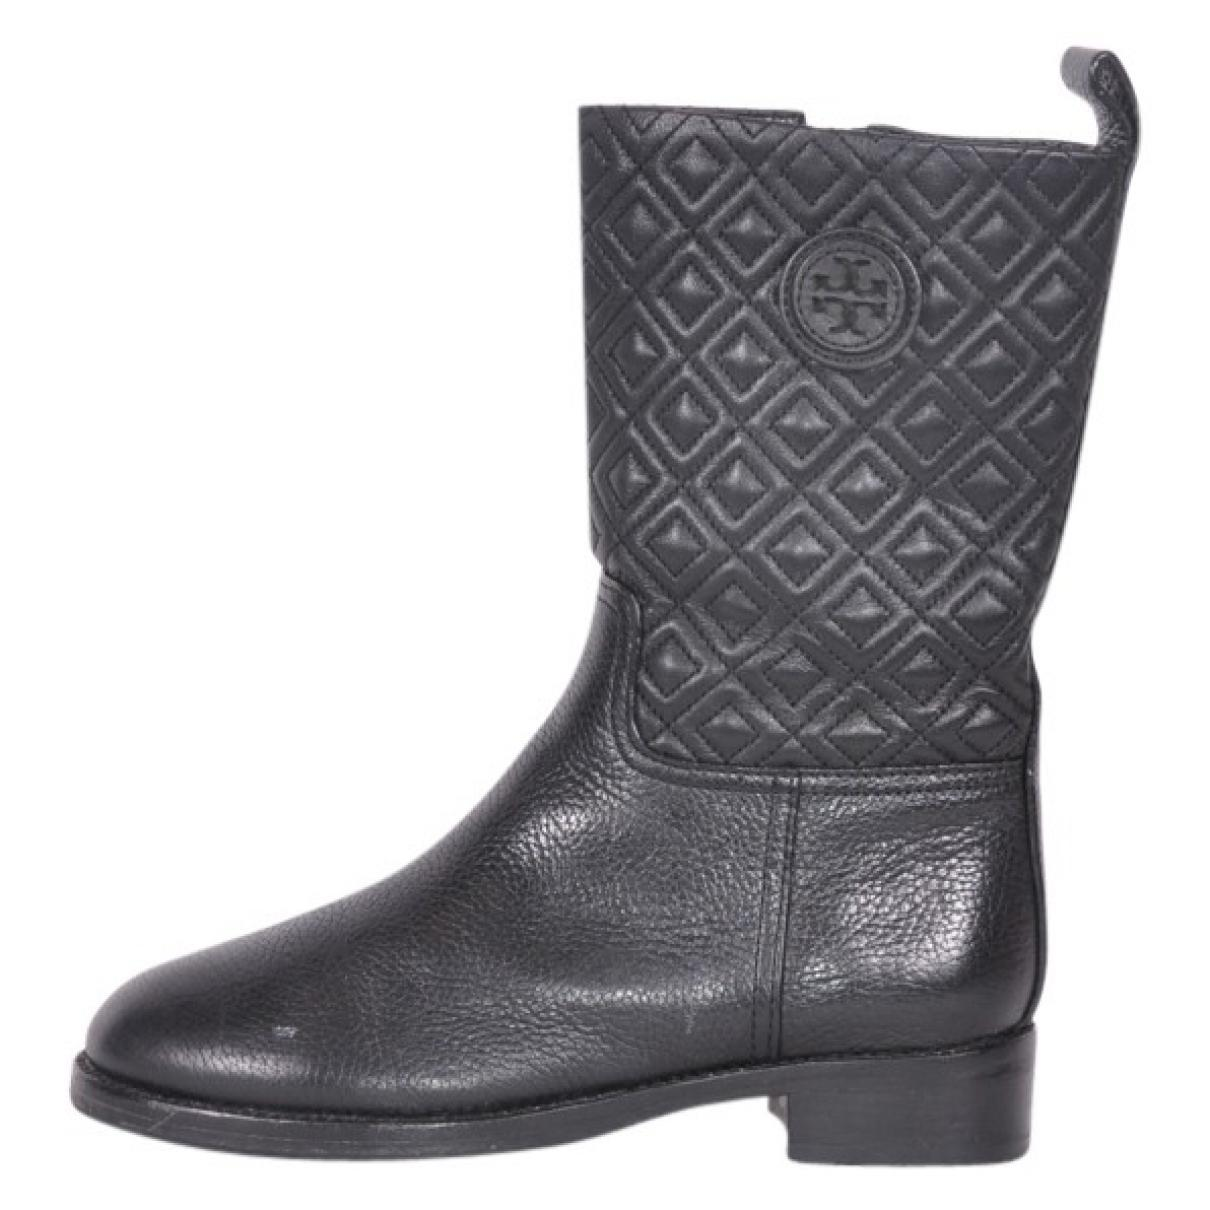 47fc5d6c2 Tory Burch. Women s Black Leather Boots.  135 From Vestiaire Collective